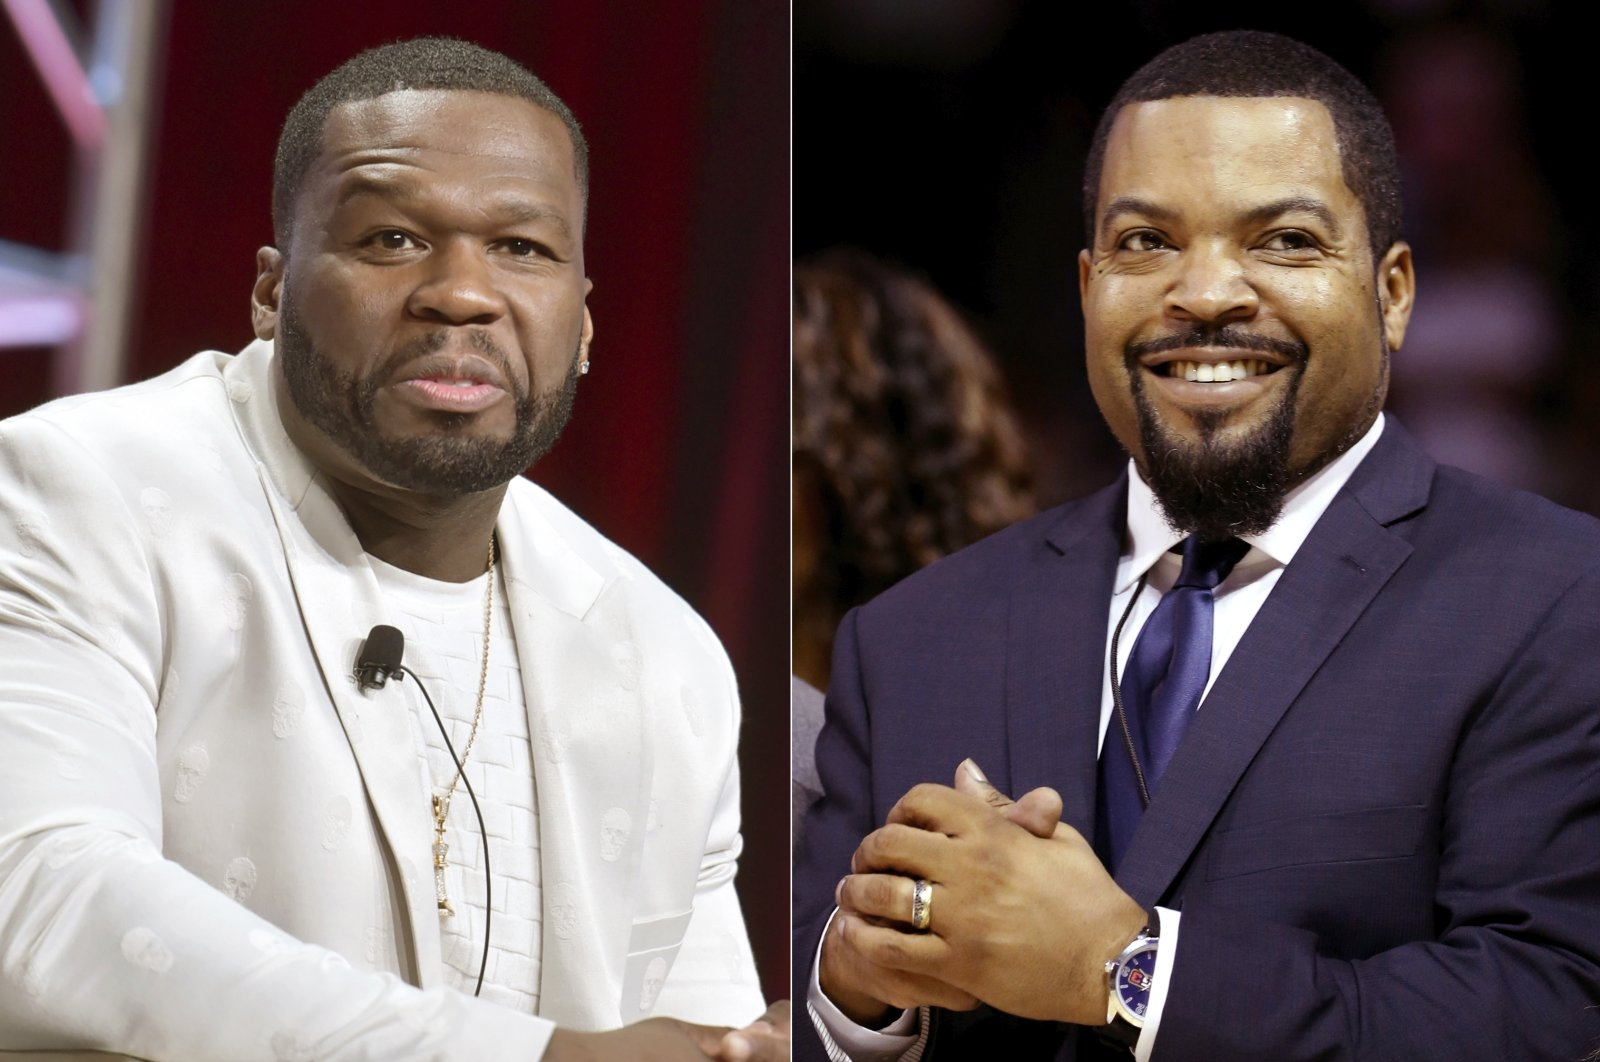 """Curtis """"50 Cent"""" Jackson (L) participates in the Starz """"Power"""" panel at the Television Critics Association Summer Press Tour in Beverly Hills, Calif., July 26, 2019, and BIG3 League founder Ice Cube (R) at the debut of the BIG3 Basketball League in New York, June 25, 2017. (AP Photo)"""